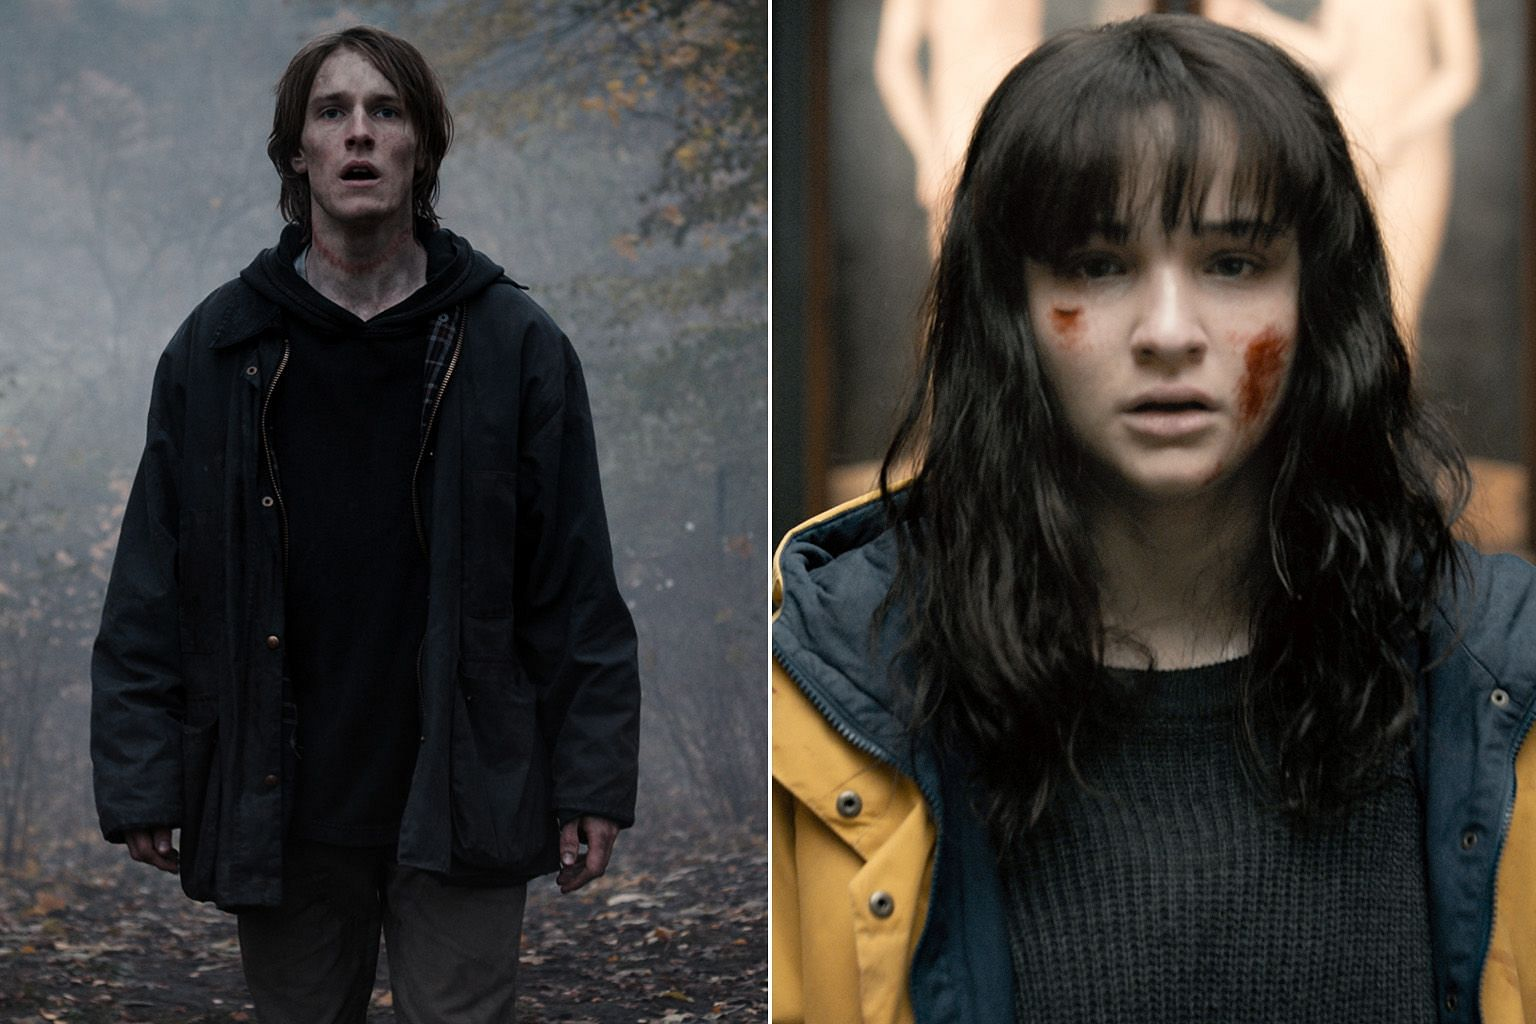 Was It Love? stars Song Ji-hyo (centre) as a film producer who finds multiple men vying for her attention. German series Dark, which is back for its third and final season, stars Louis Hofmann (left) and Lisa Vacari (above) as time-hopping teenagers